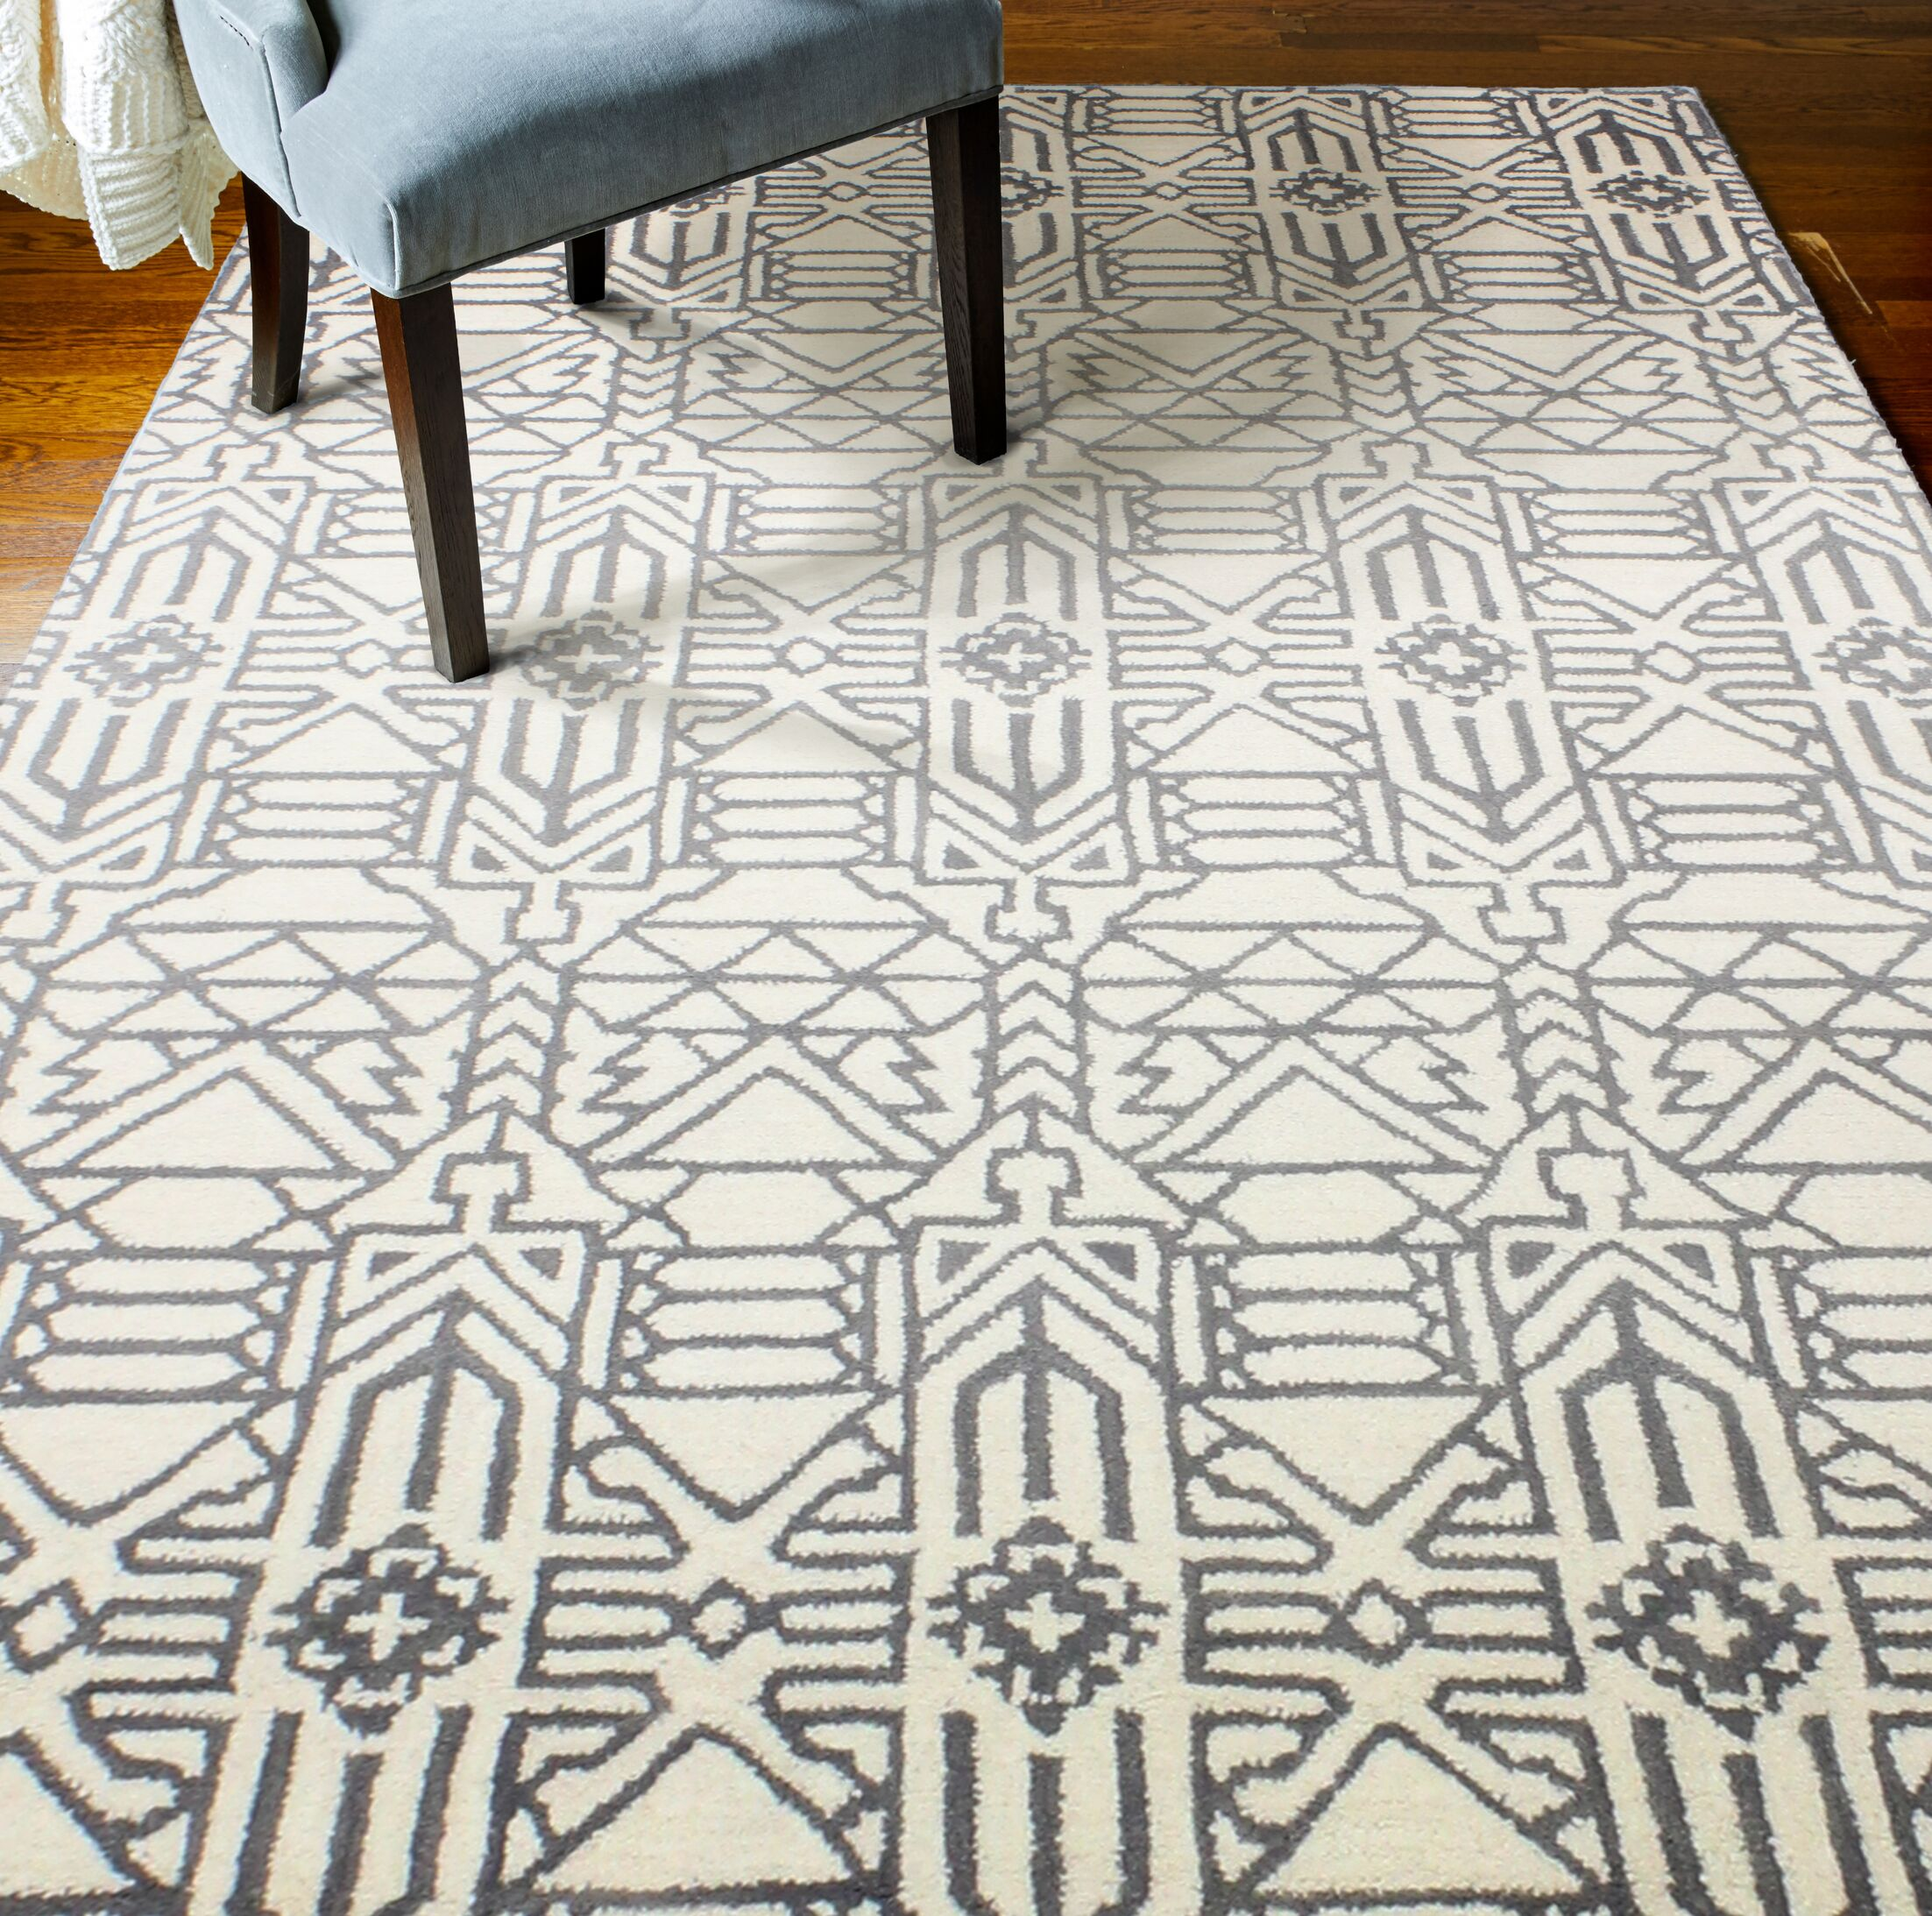 Lonergan Hand-Woven Wool Ivory/Gray Area Rug Rug Size: Rectangle 3'6